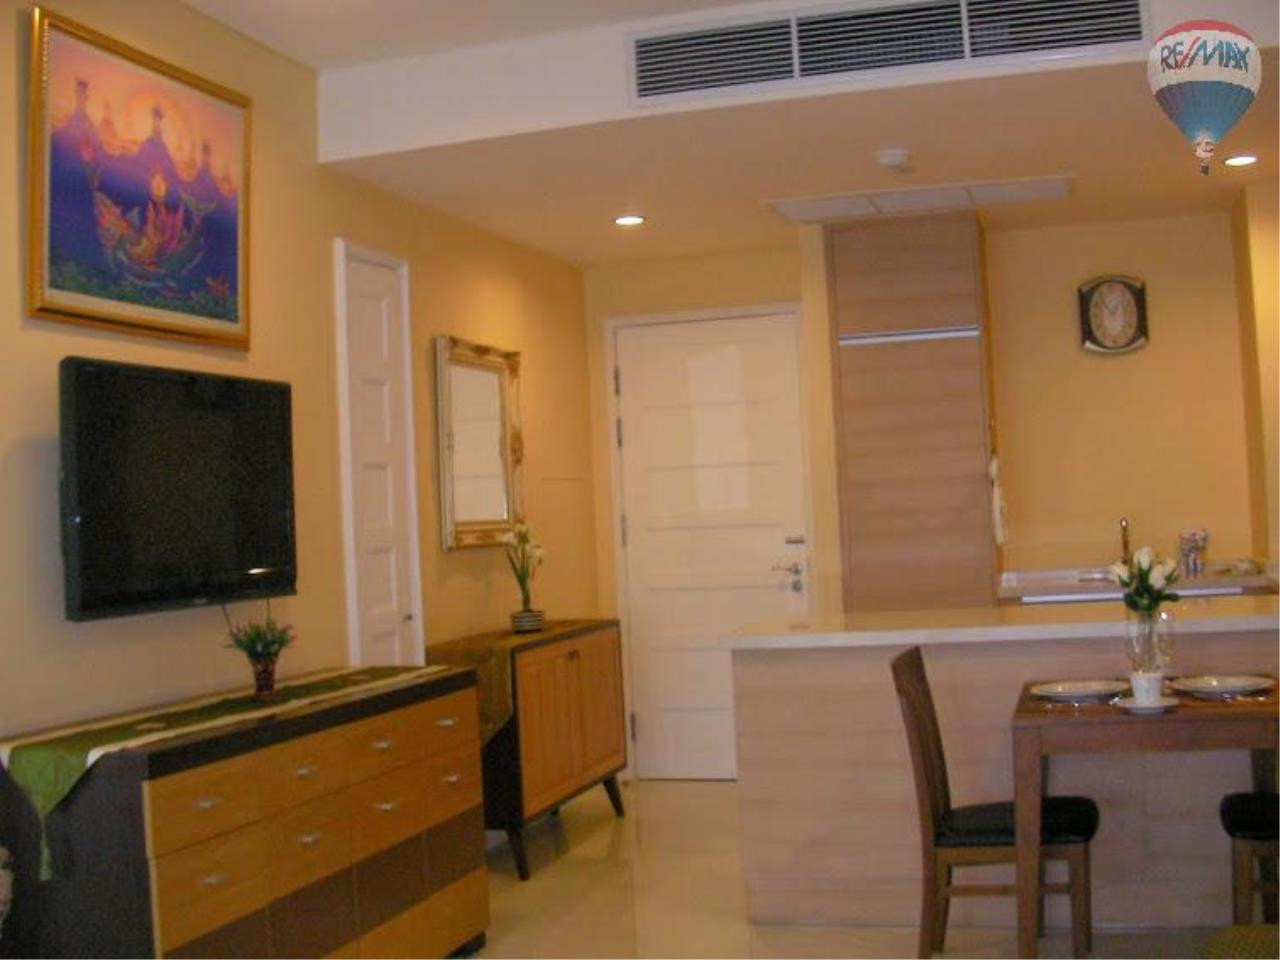 RE/MAX Properties Agency's 1 Bedroom for Sale at Sukhumvit 22 8